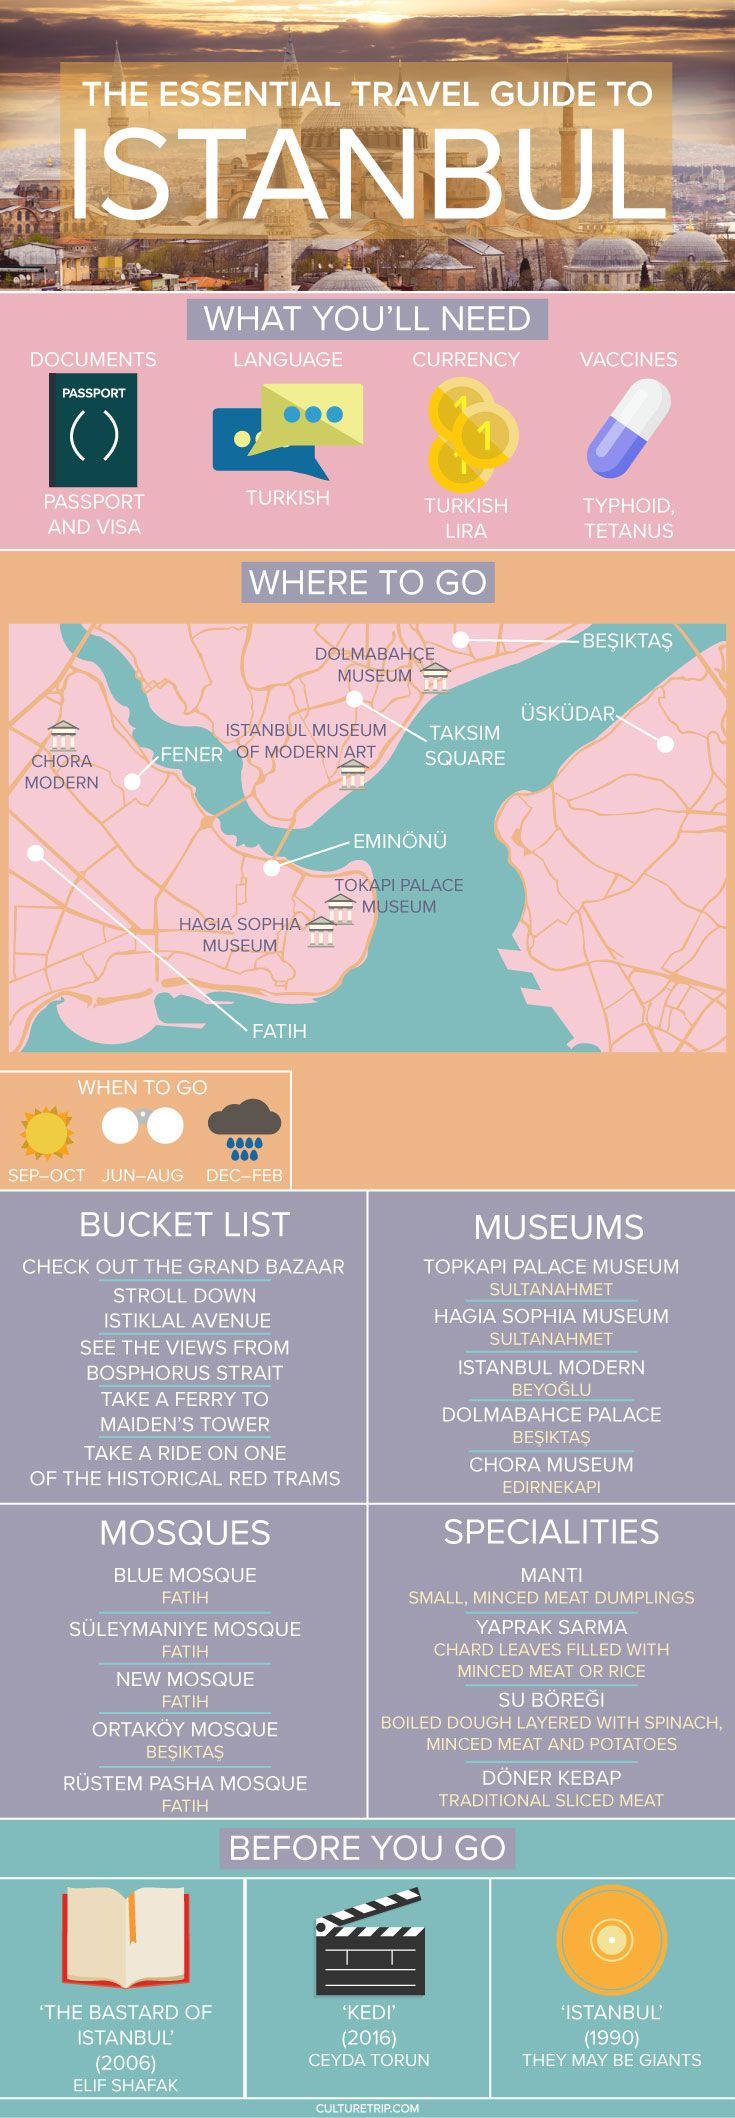 The Essential Travel Guide to Istanbul (Infographic)|Pinterest: theculturetrip